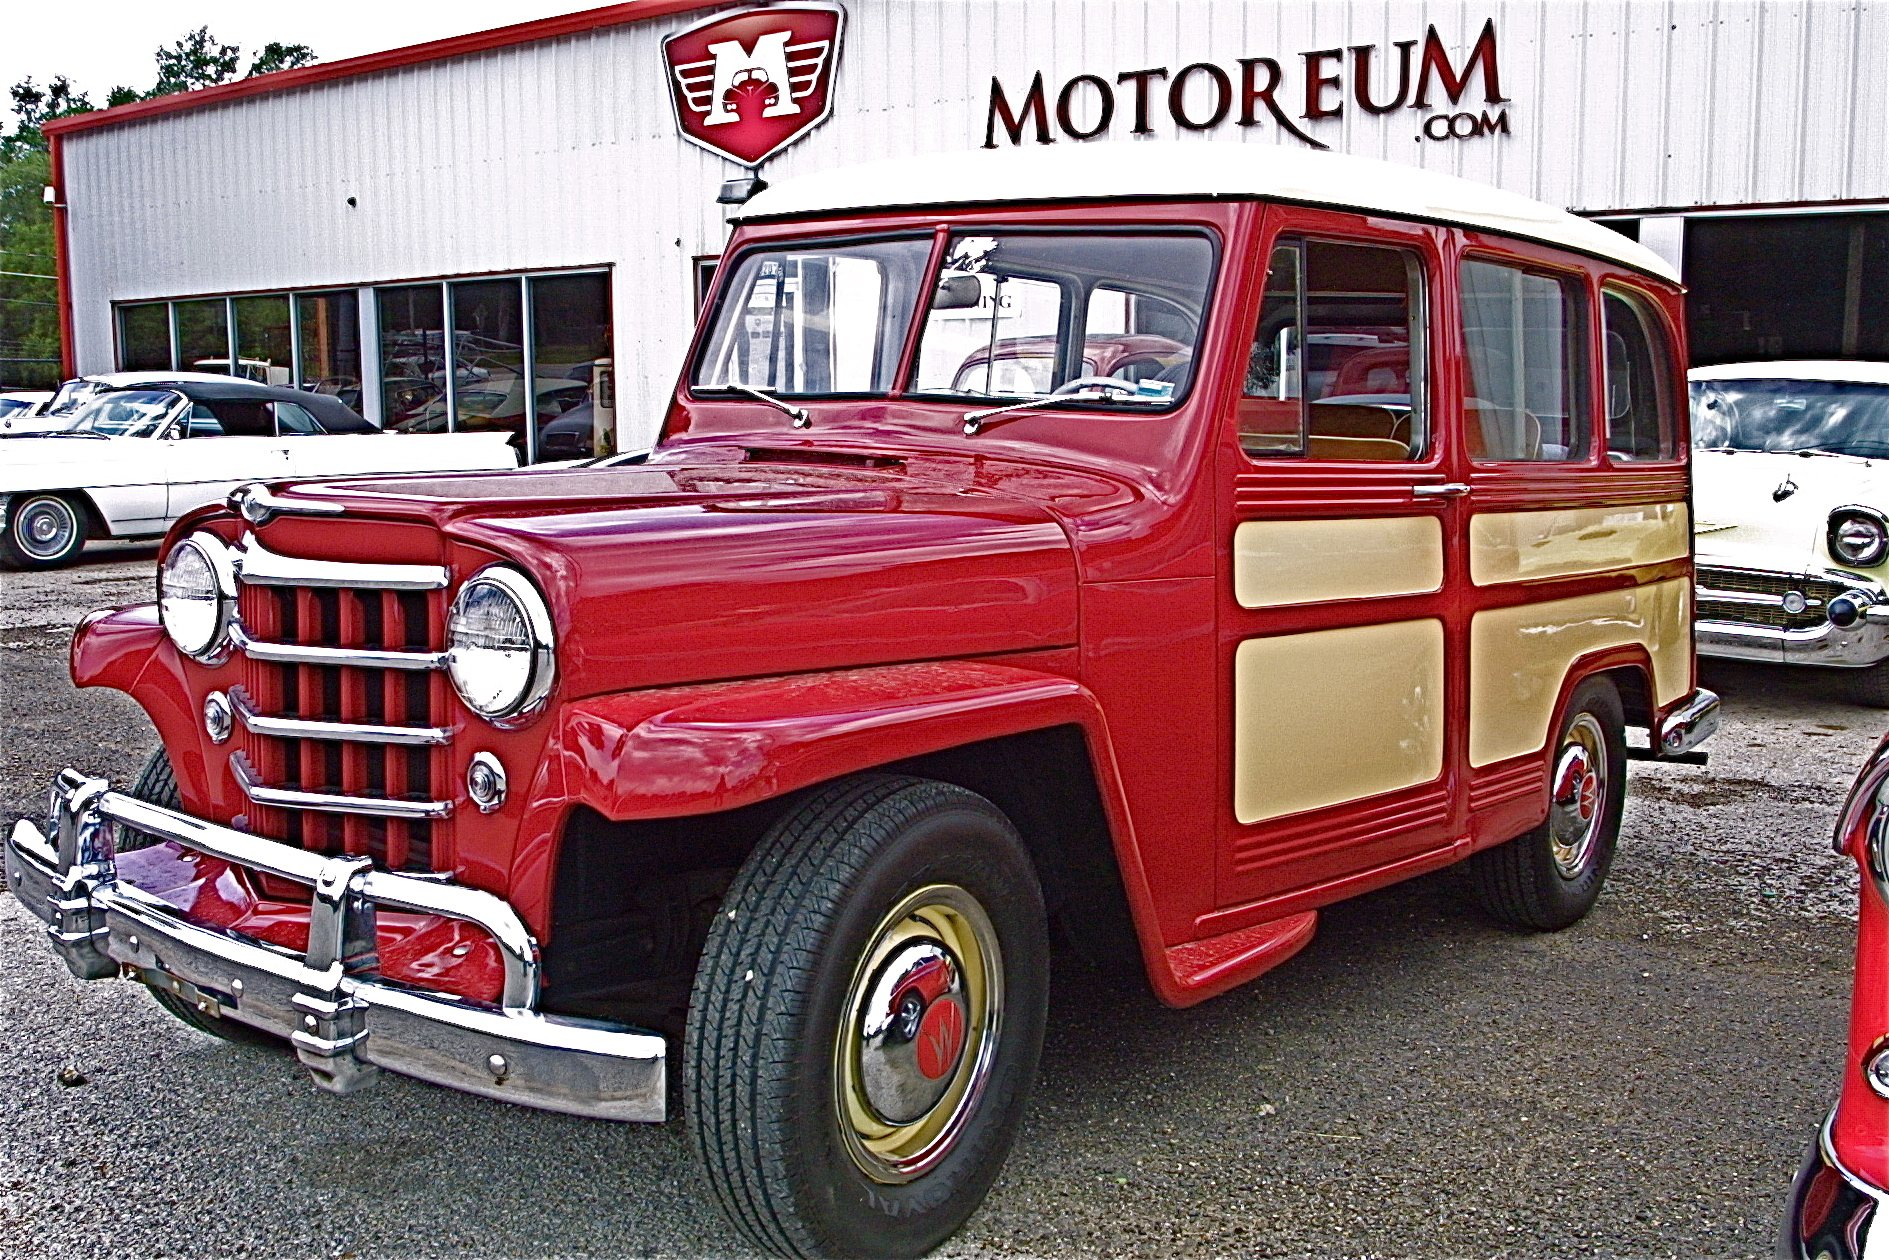 rare restored 1951 jeep willys wagon for sale at motoreum atx car pictures real pics from. Black Bedroom Furniture Sets. Home Design Ideas